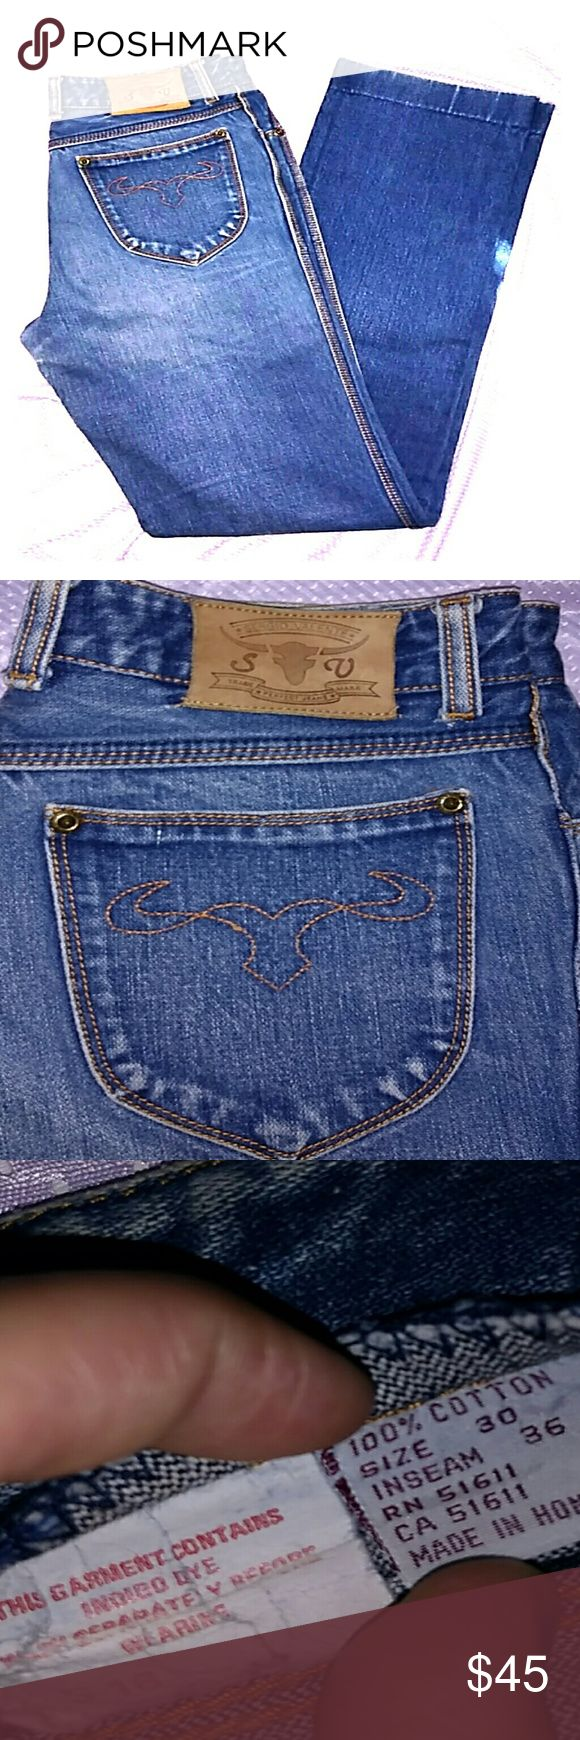 Vintage('80's) Sergio Valente Jeans Amazing Condition! See pics for measurements. Feel free to ask any questions! **Reasonable** Offers accepted!💕 Sergio Valente Jeans